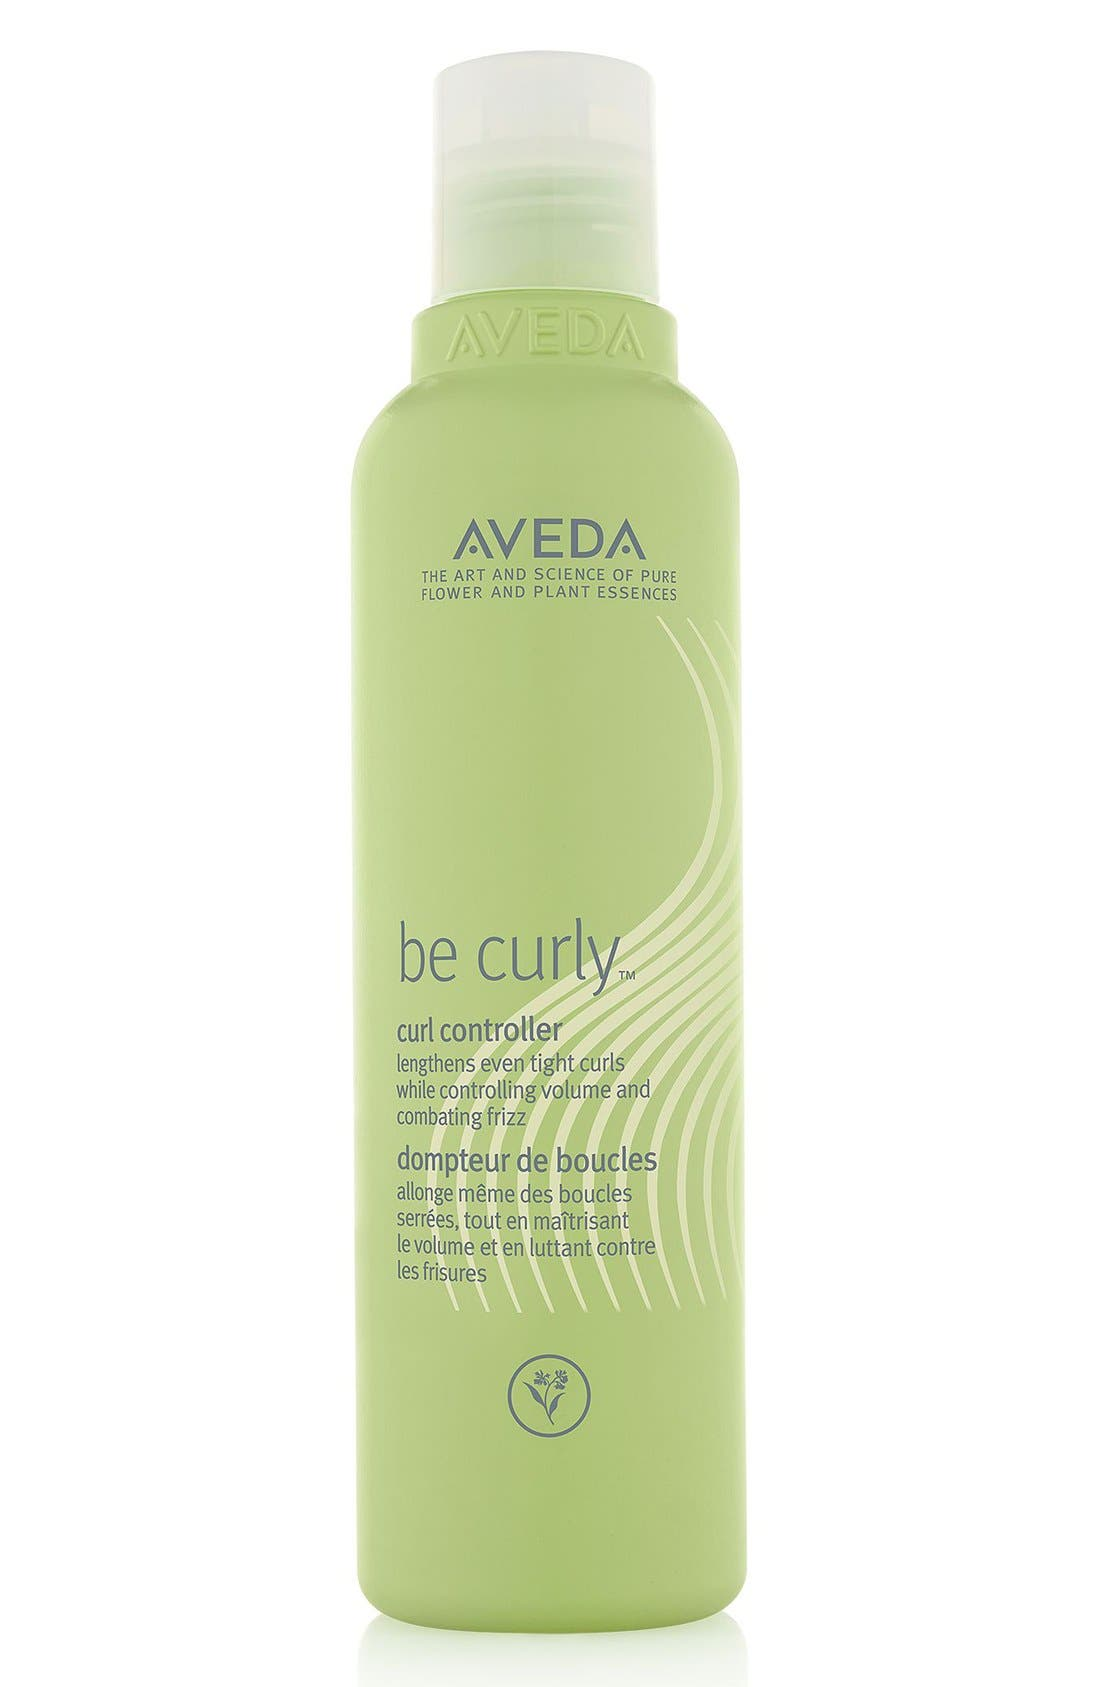 Aveda be curly™ Curl Controller